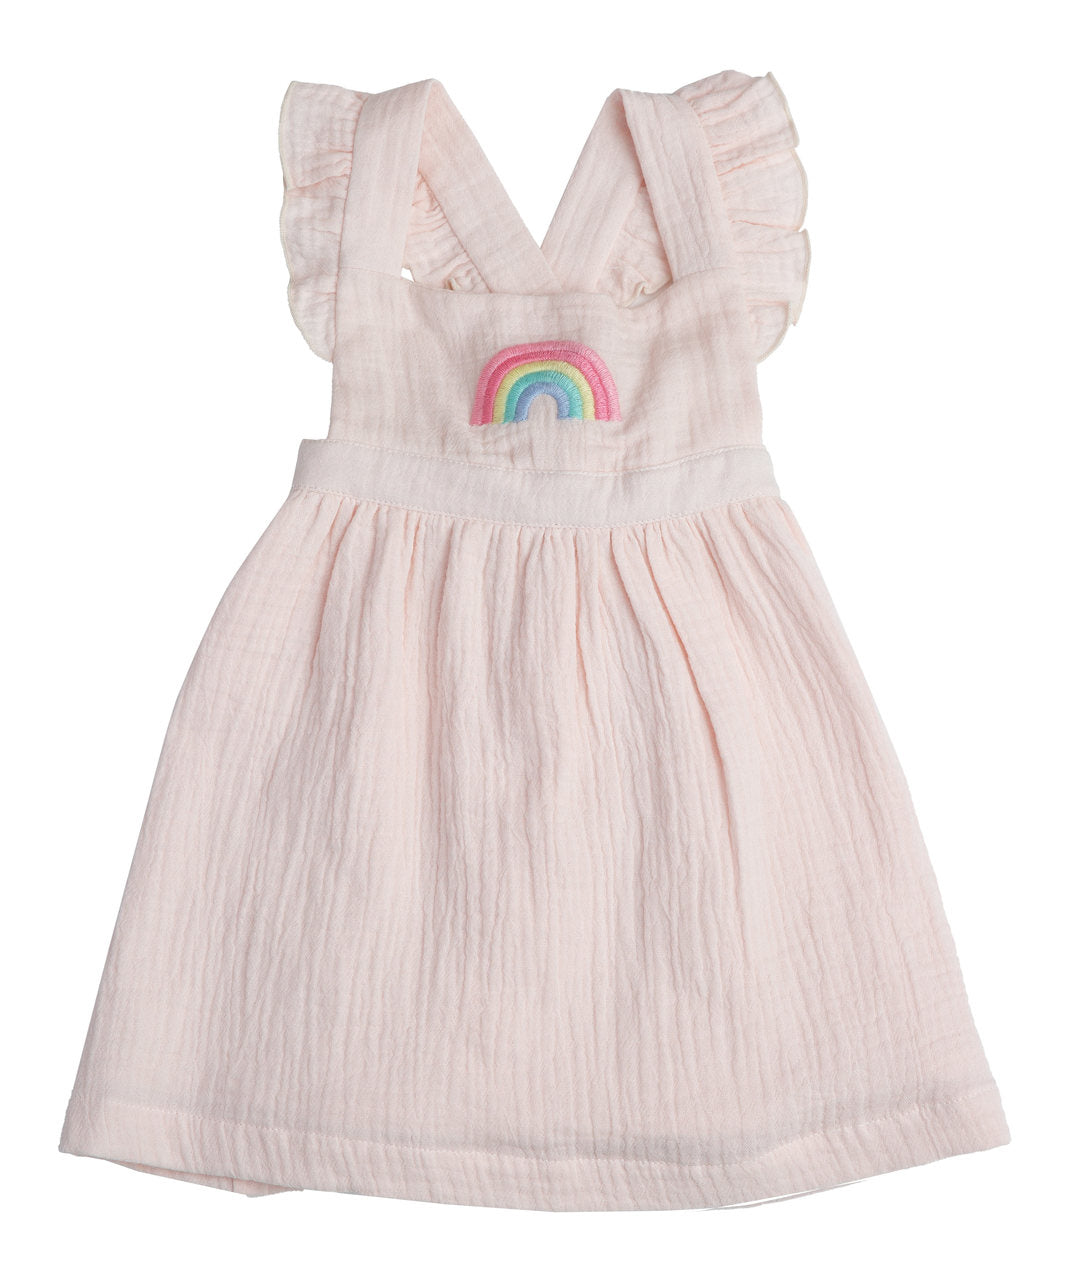 RAINBOWS PINAFORE TOP & BLOOMER